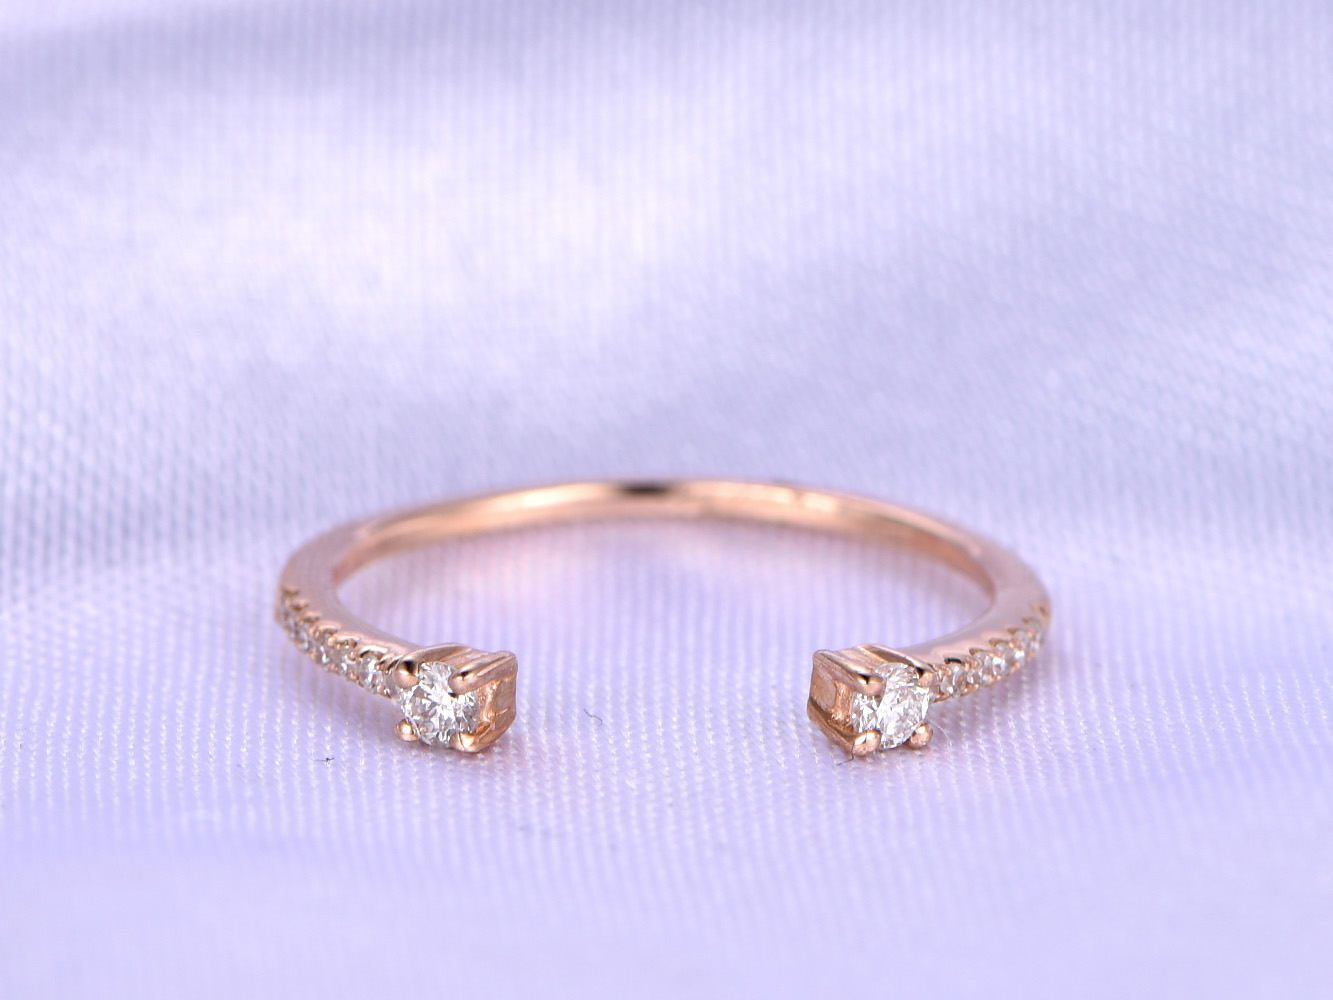 Diamond Wedding Band Real Matching Open Gap 10mm Half Eternity Ring Anniversary Personalized For Her Custom By Milegem On Etsy: Open Eternity Wedding Band At Reisefeber.org